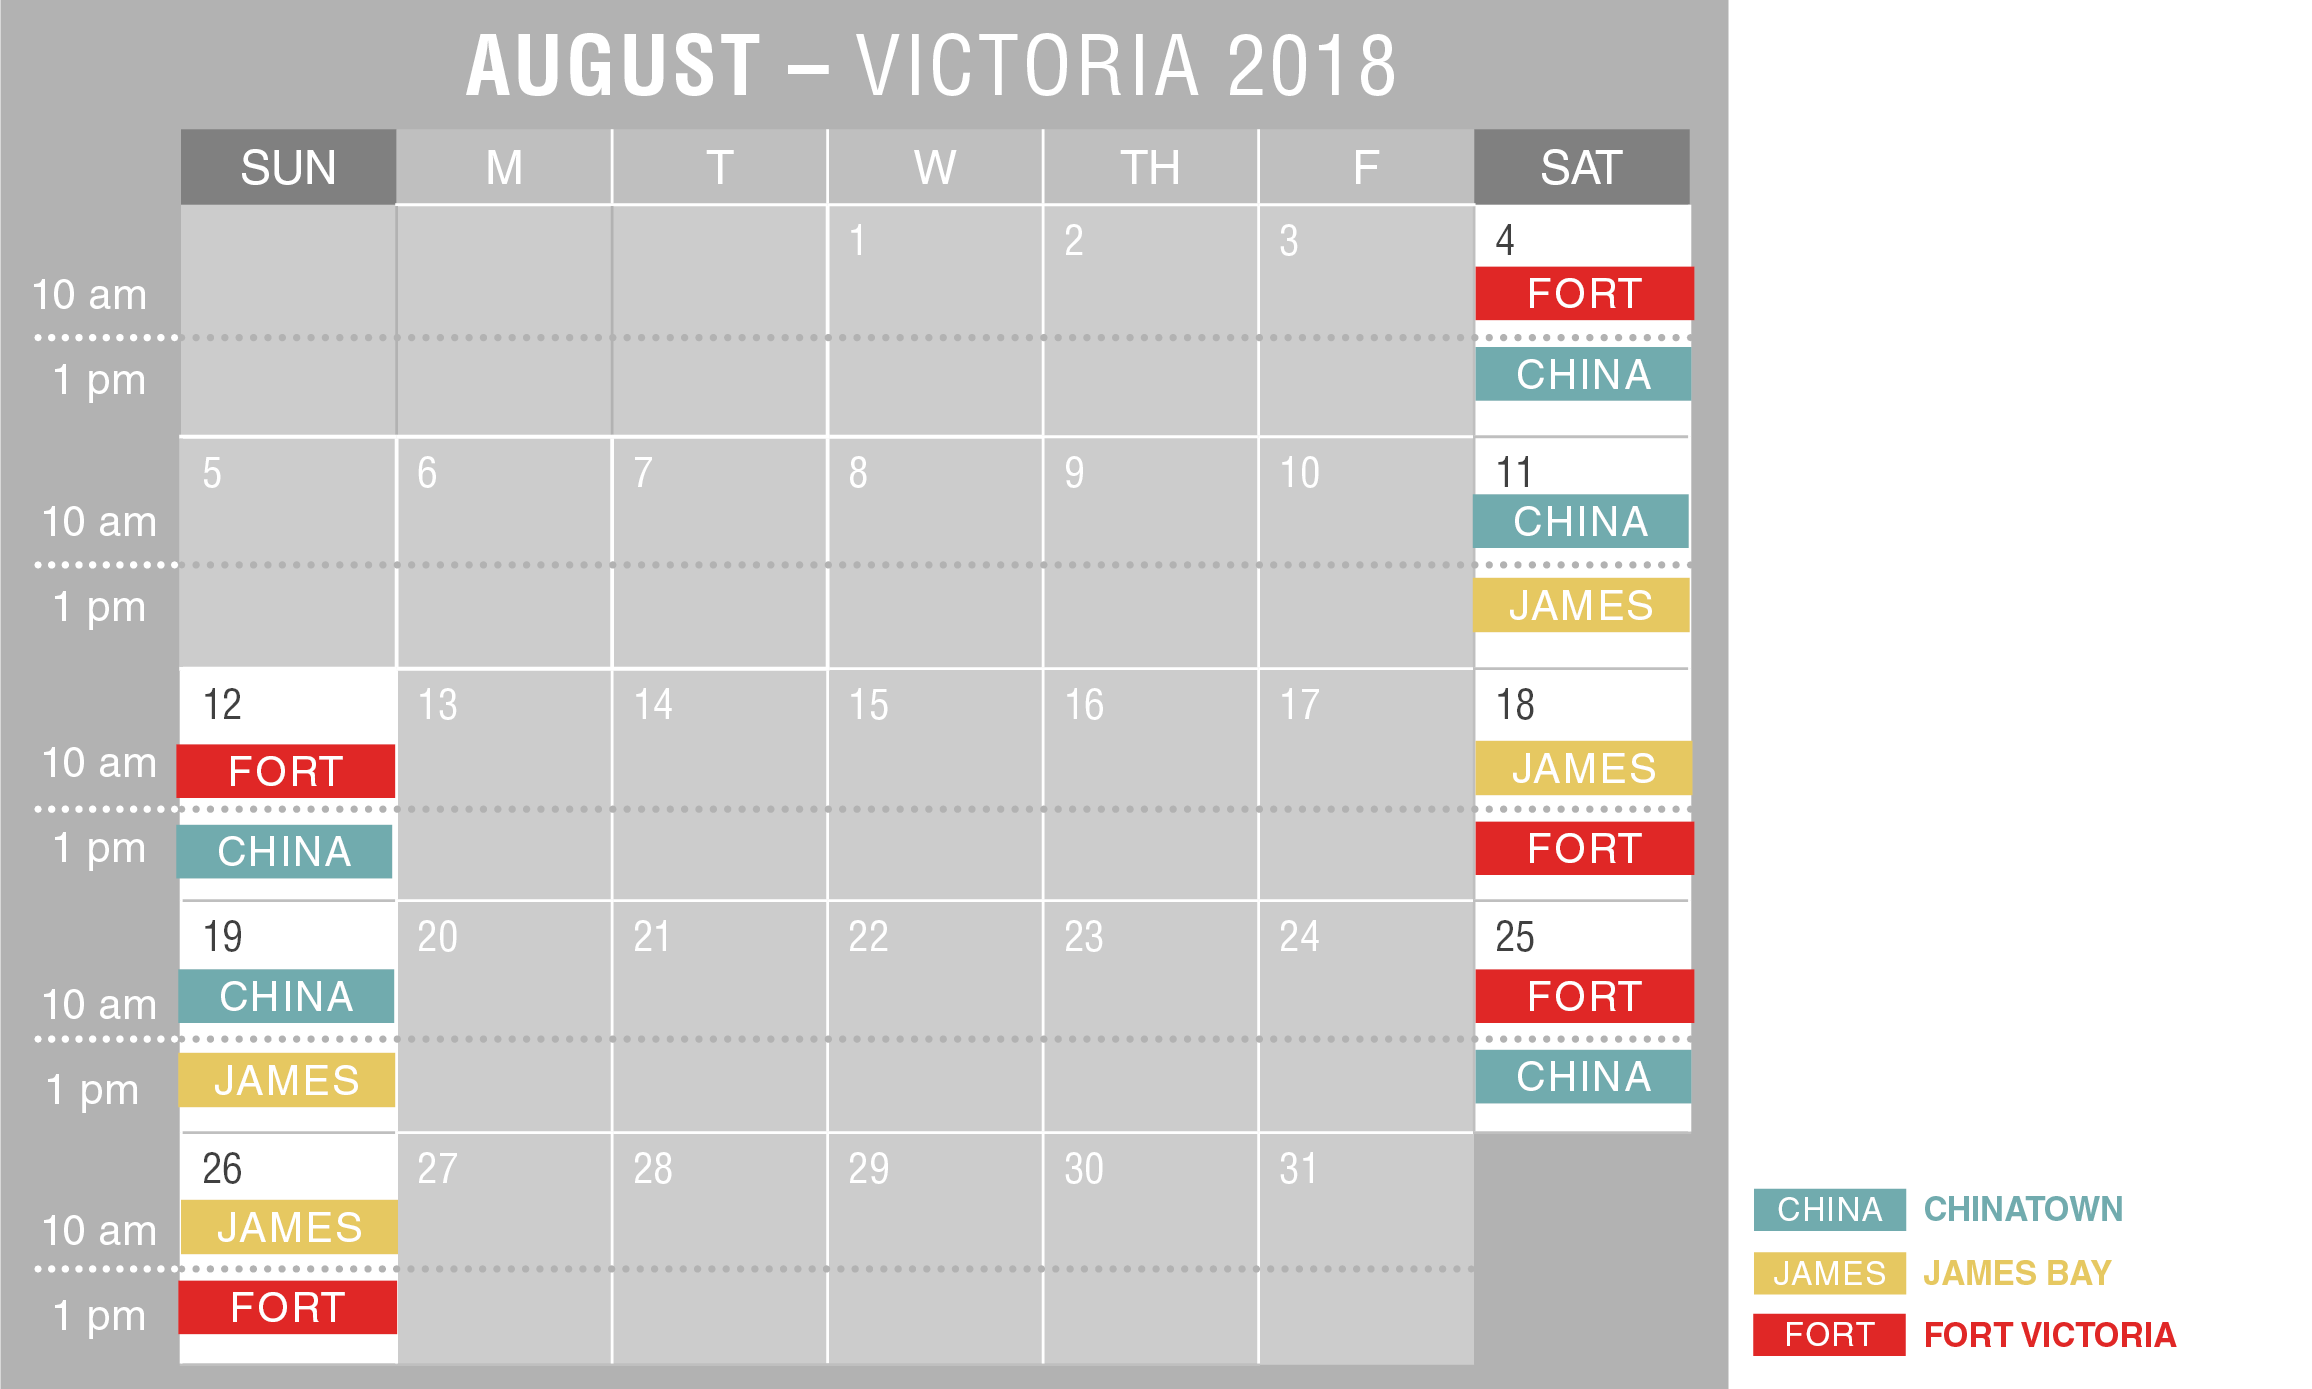 2018 Victoria Walking Tour Schedule August